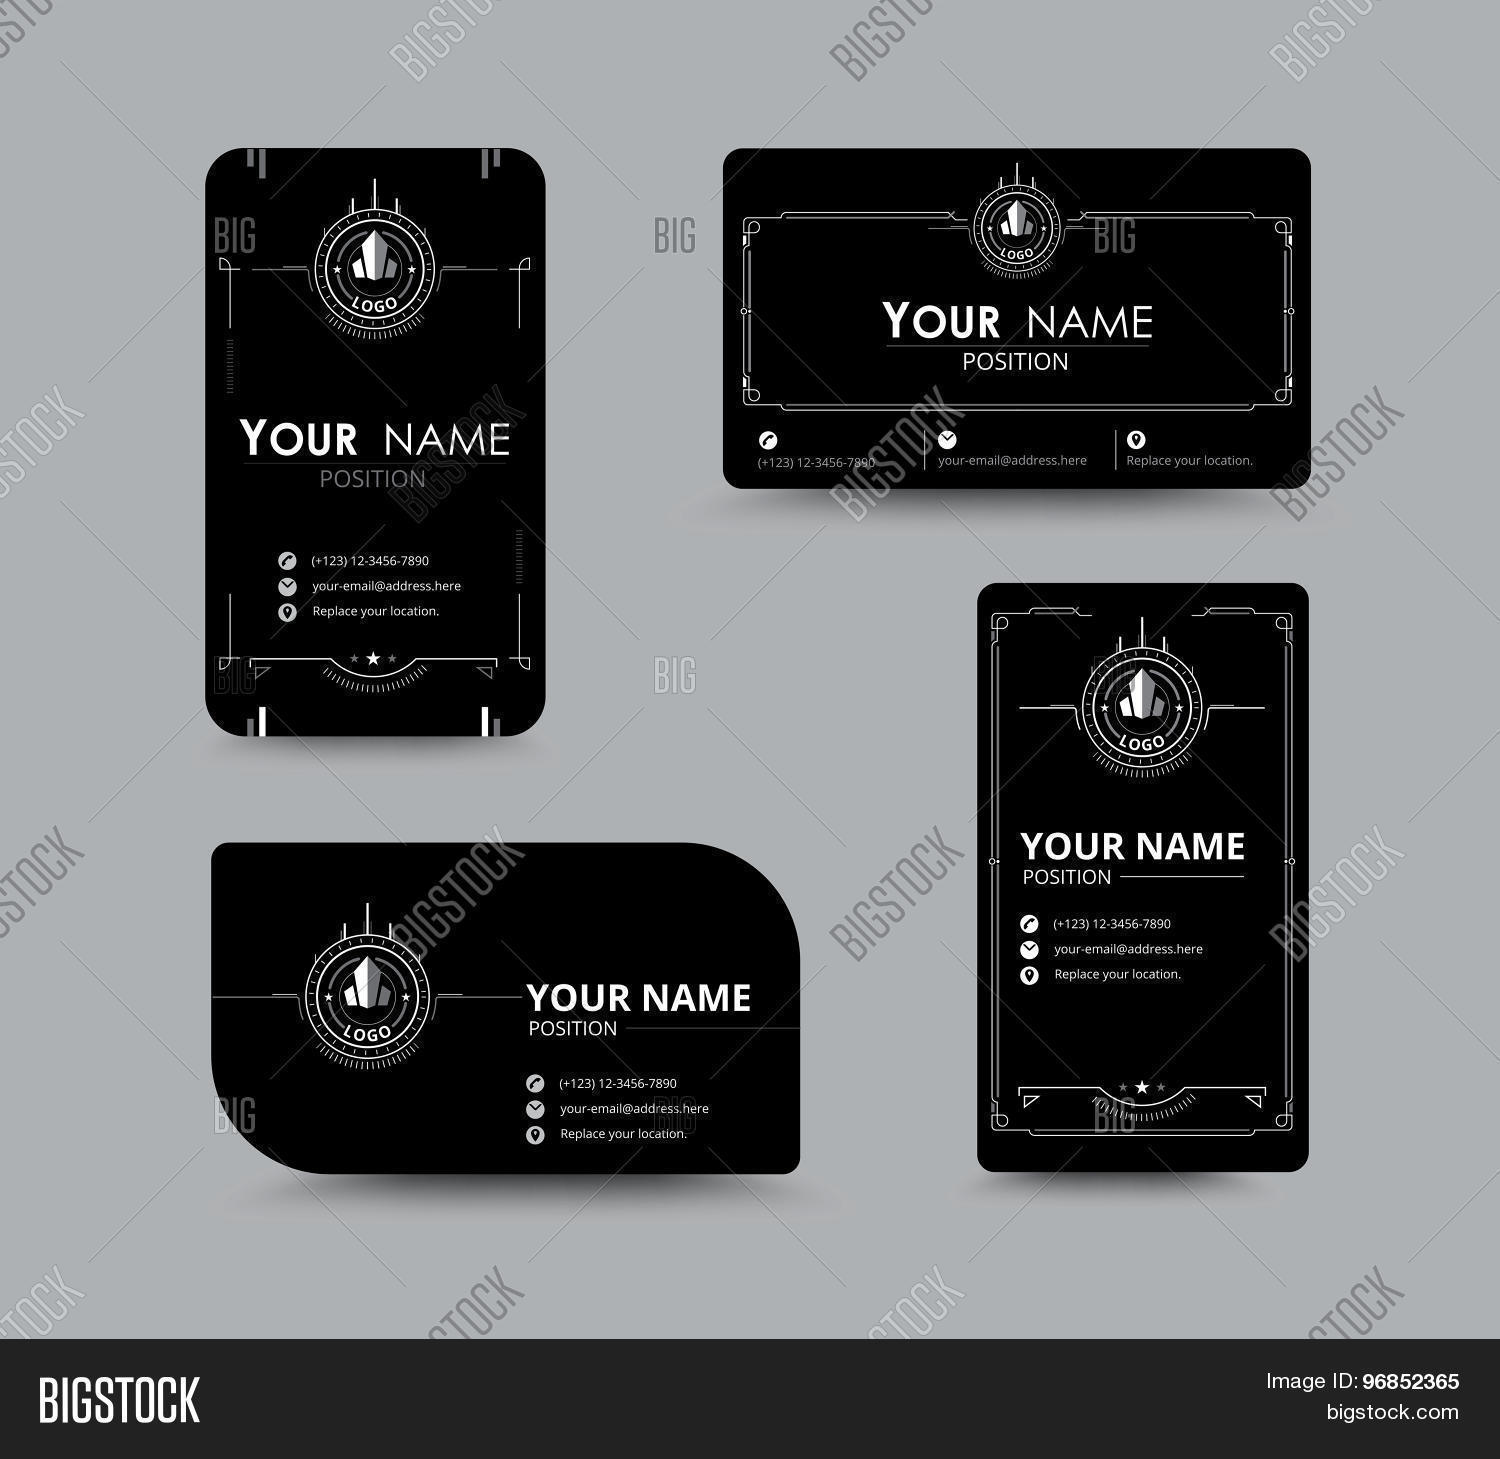 White Business Name Card. Design Vector & Photo | Bigstock